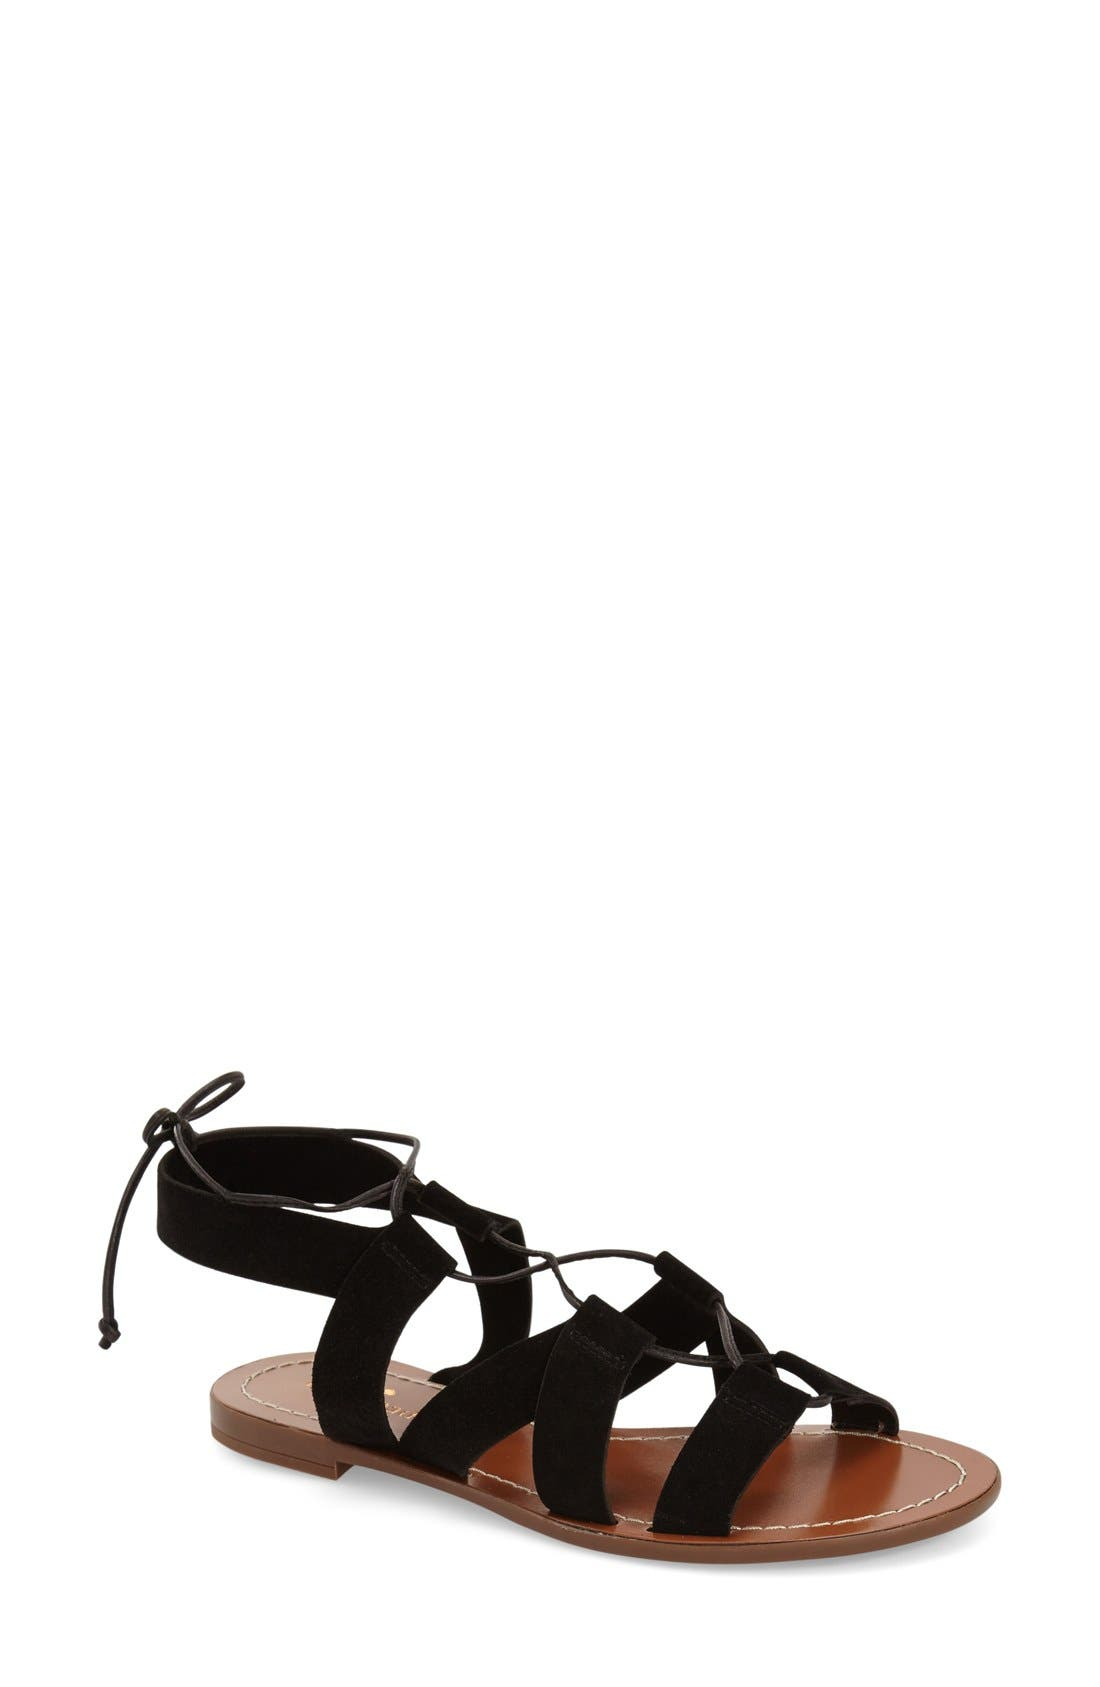 Main Image - kate spade new york 'suno' sandal (Women)